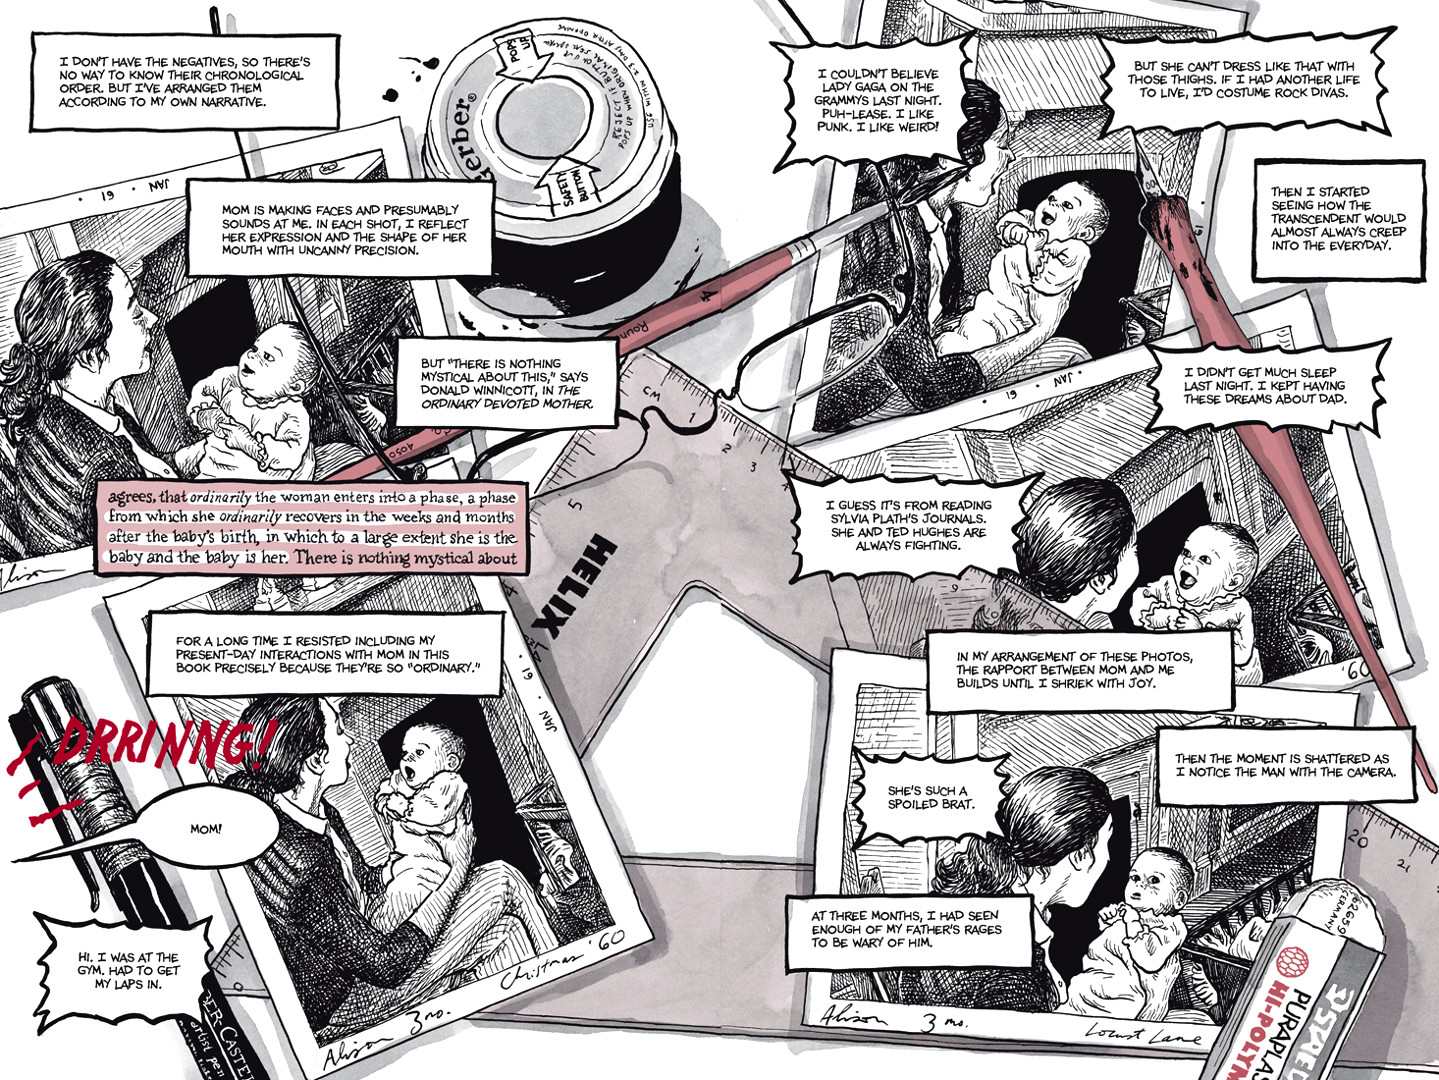 Page 32, Chapter 1: Ordinary Devoted Mother from Alison Bechdel's graphic novel Are You My Mother